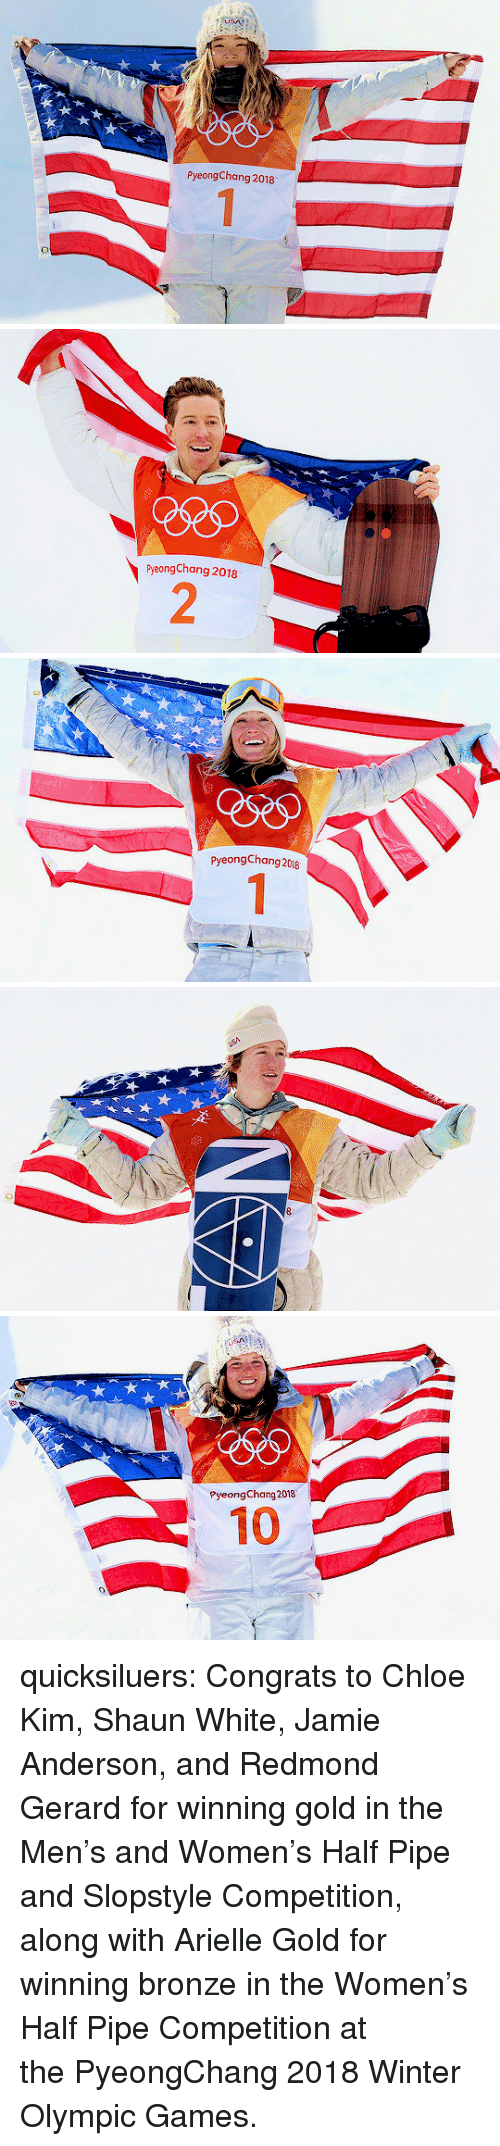 Target, Tumblr, and Winter: PyeongChang 2018   PyeongChang 2018  2   PyeongChang 2018   PyeongChang 2018  10 quicksiluers:  Congrats to Chloe Kim, Shaun White, Jamie Anderson, and Redmond Gerard for winning gold in the Men's and Women's Half Pipe and Slopstyle Competition, along with Arielle Gold for winning bronze in the Women's Half Pipe Competition at thePyeongChang 2018 Winter Olympic Games.